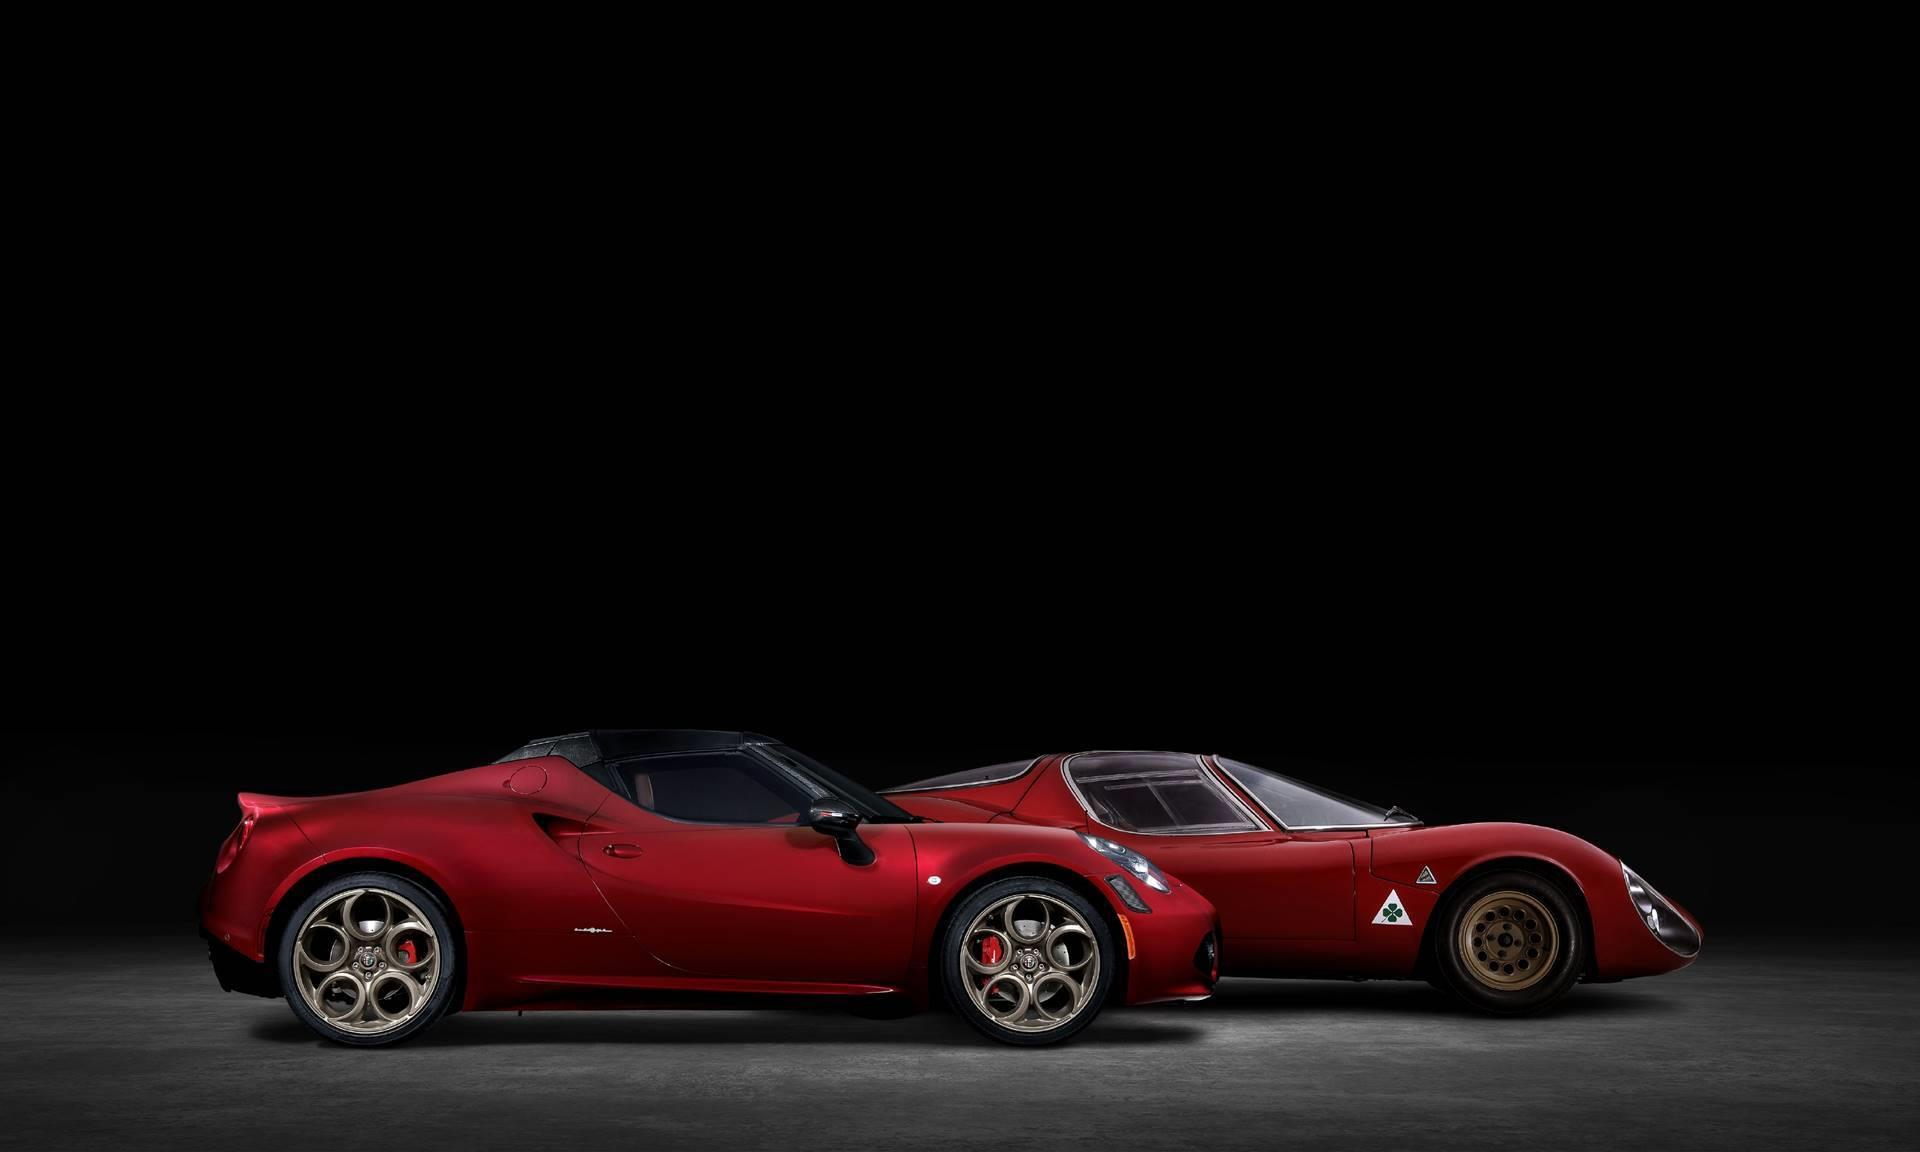 2021 Alfa Romeo 4c Spider 33 Stradale Tributo News And Information